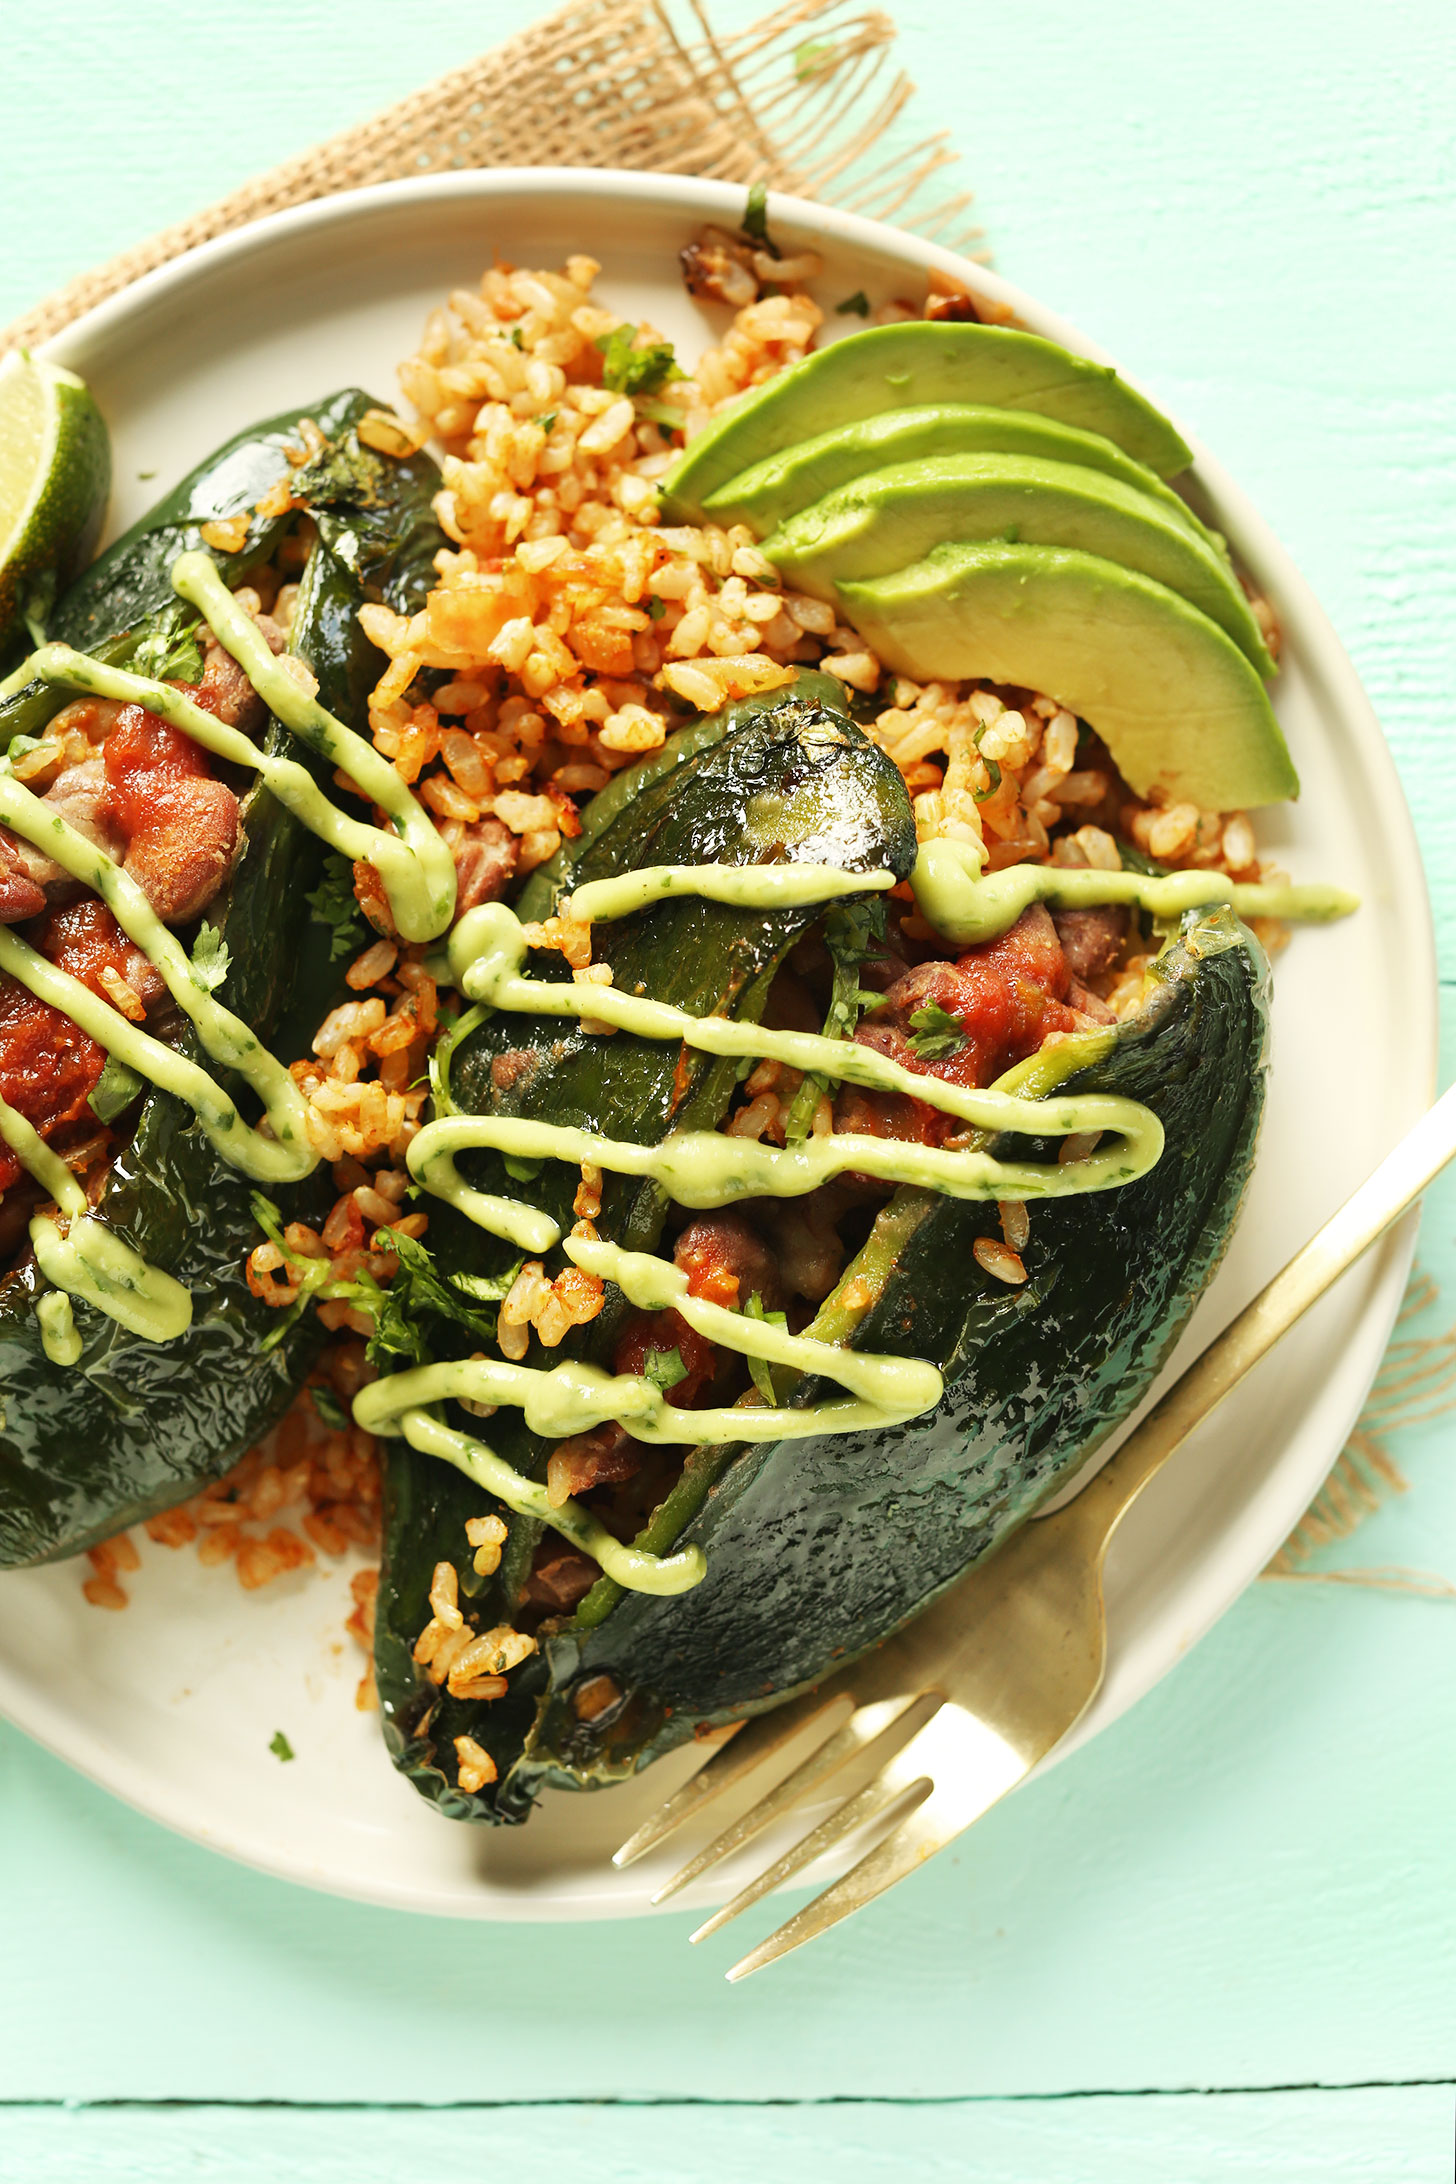 Vegan stuffed poblano peppers minimalist baker recipes plant based dinner of vegan stuffed poblano peppers on a plate forumfinder Image collections